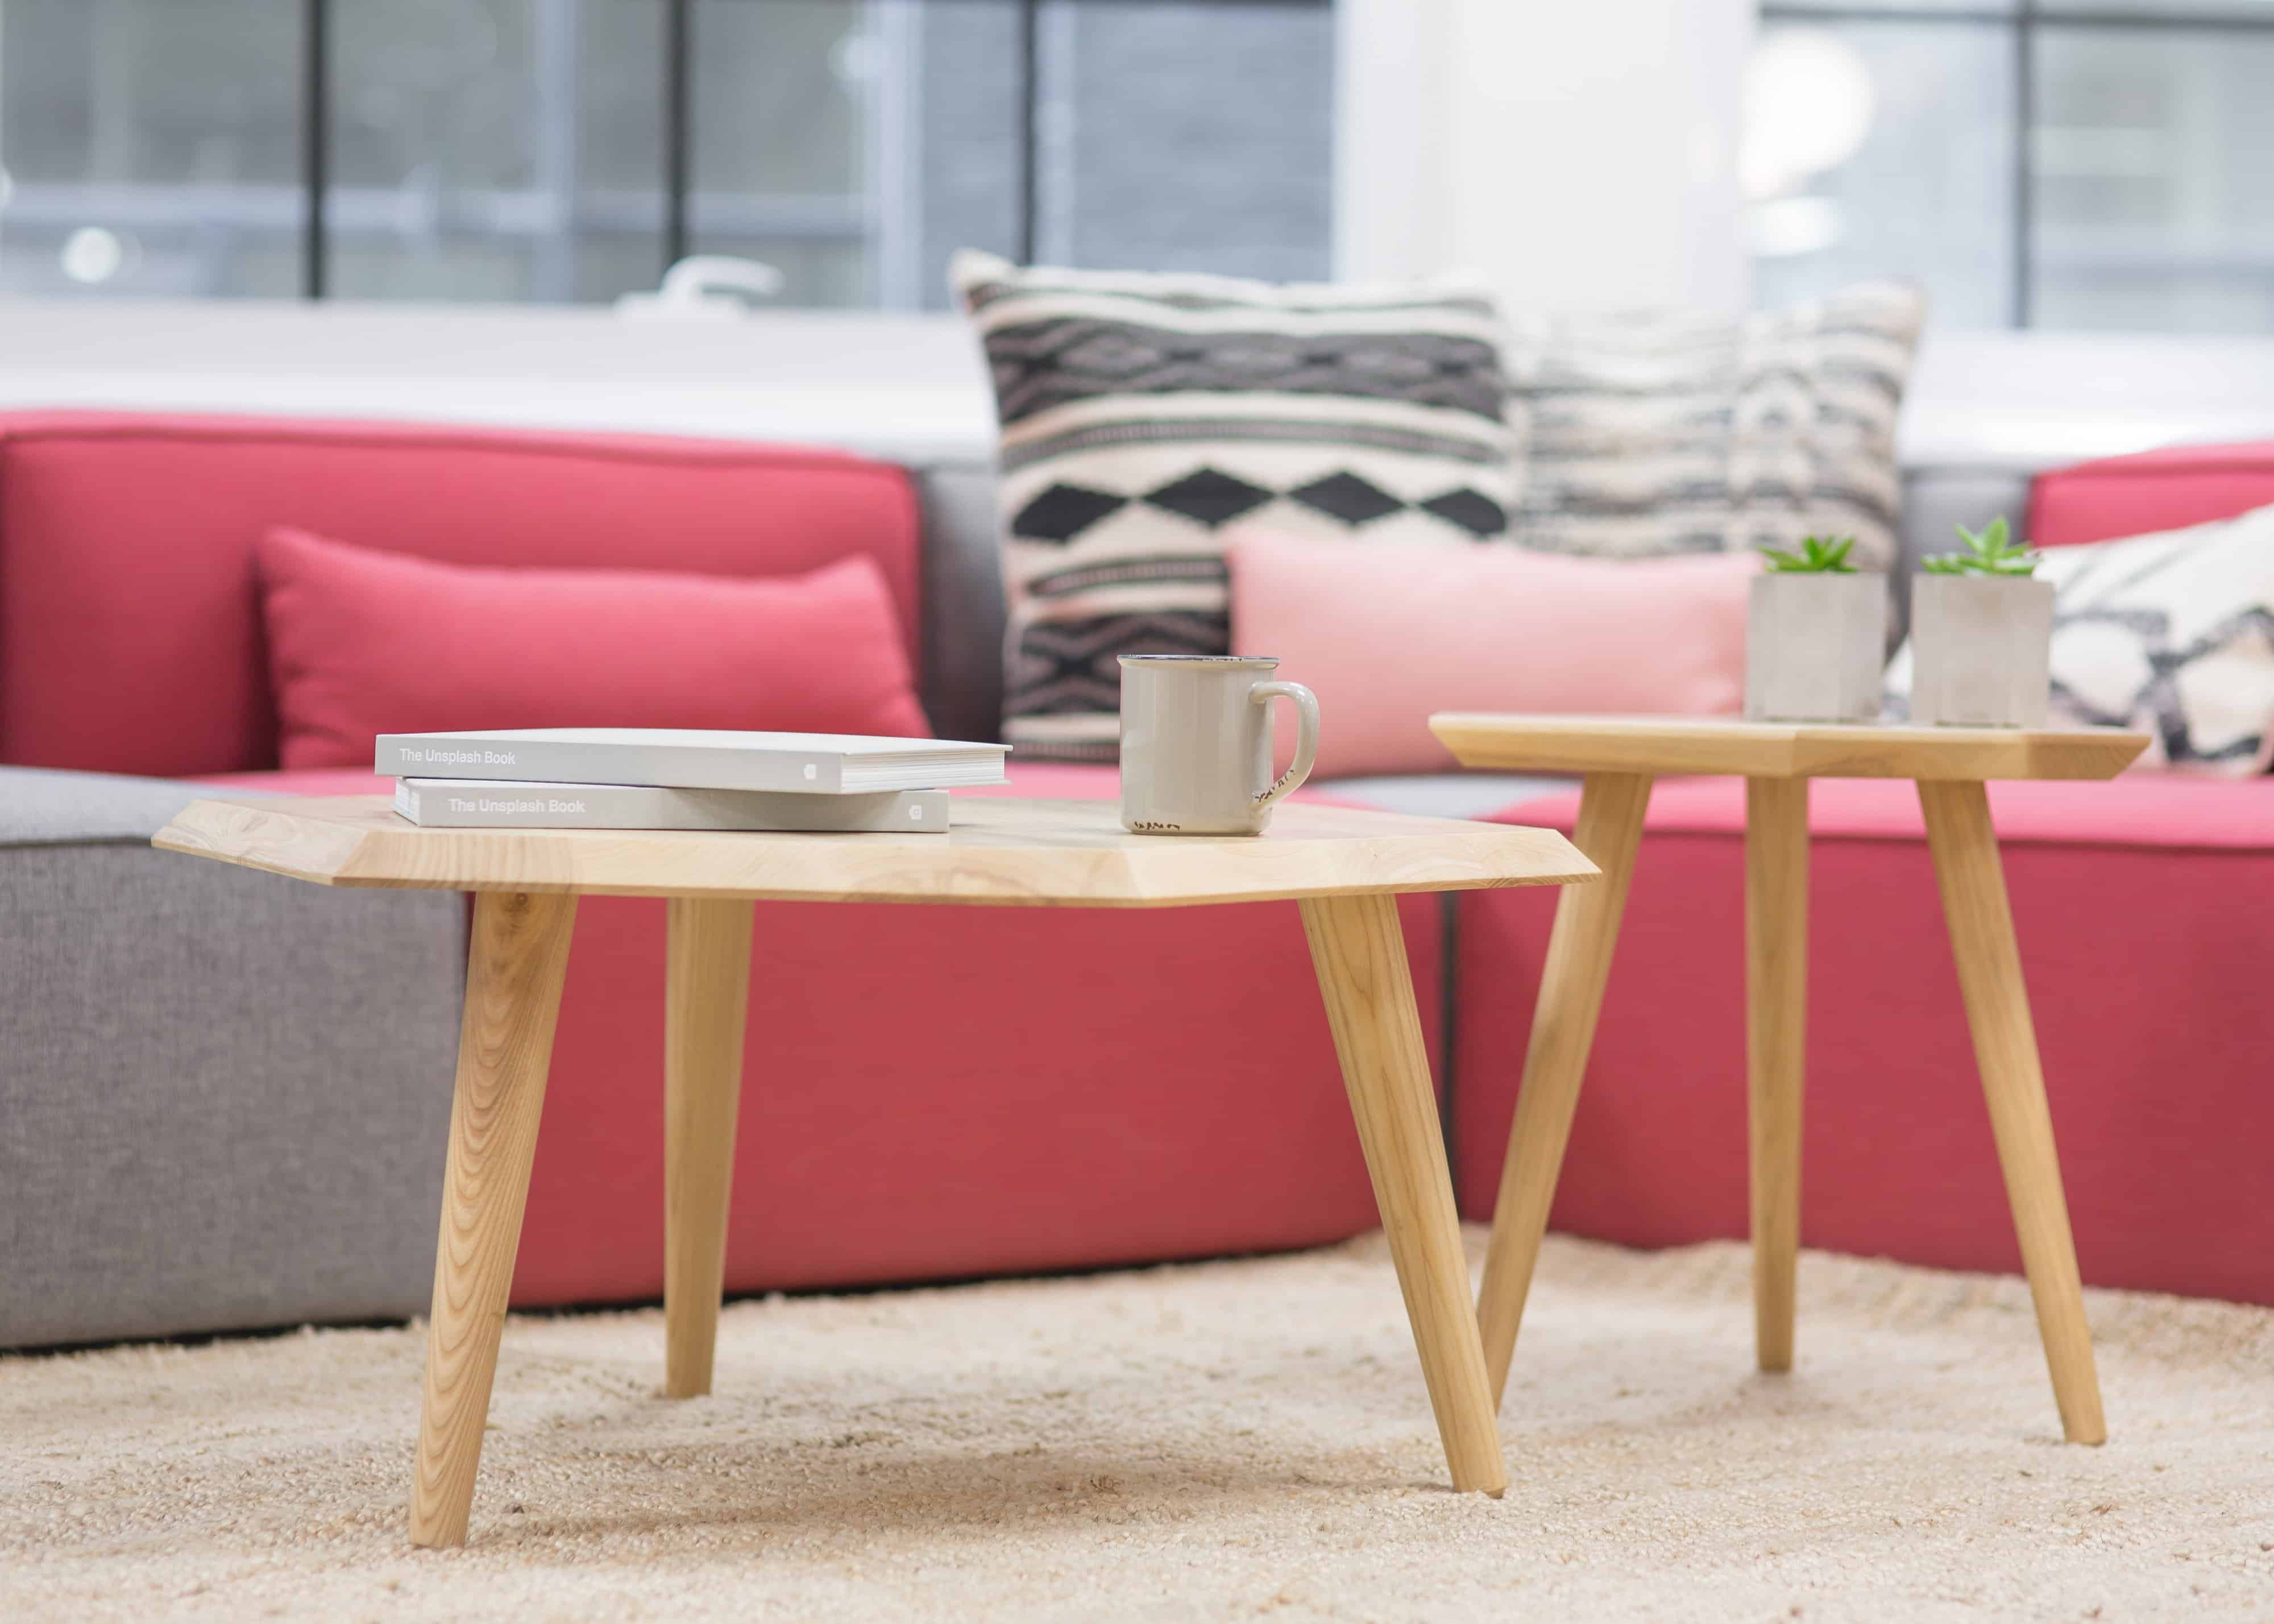 How To Get Started Making Your Own Simple Furniture